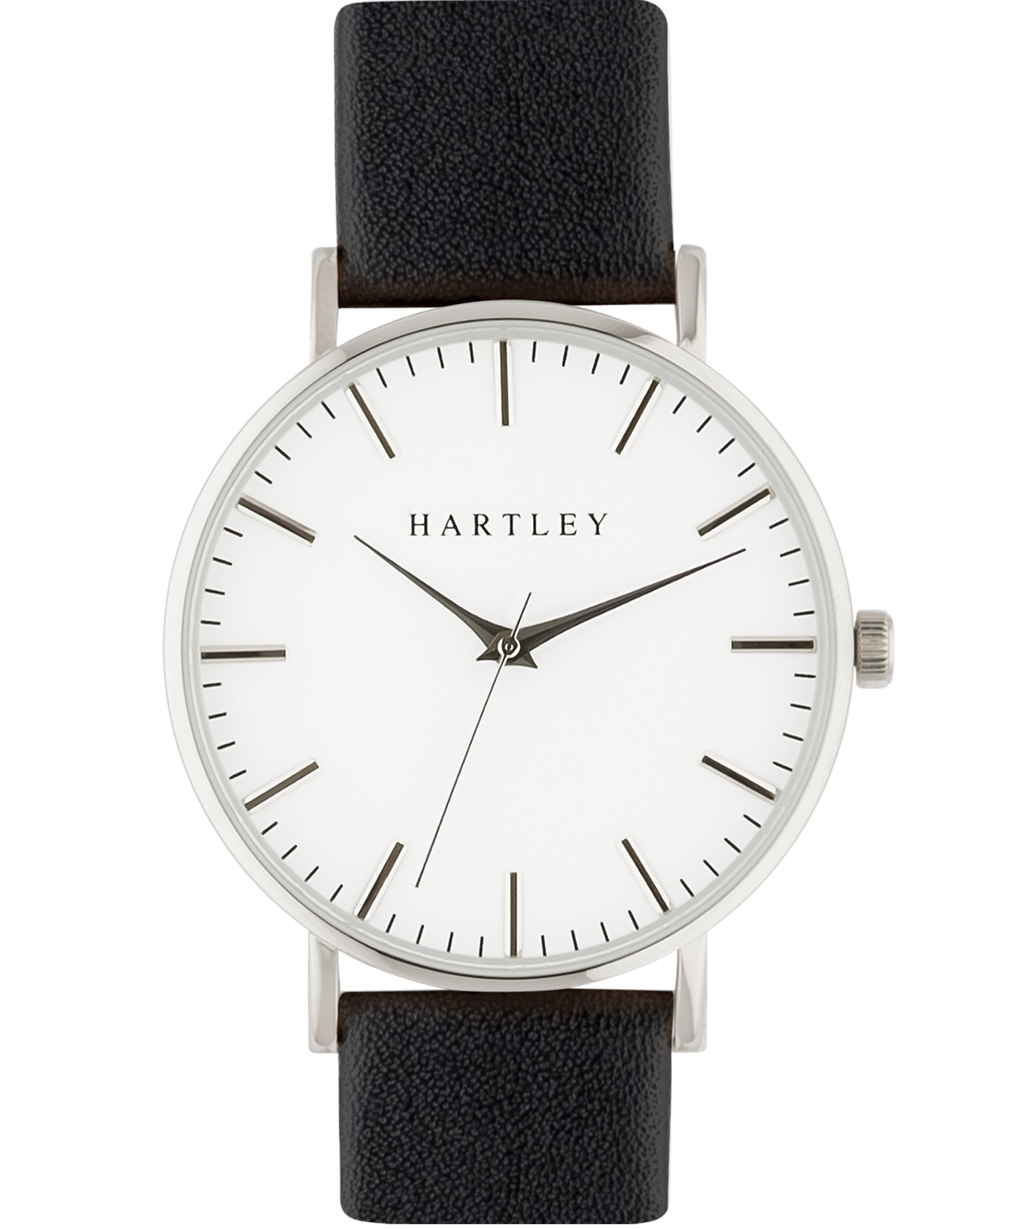 HARTLEY ORIGINALS Silver & Black